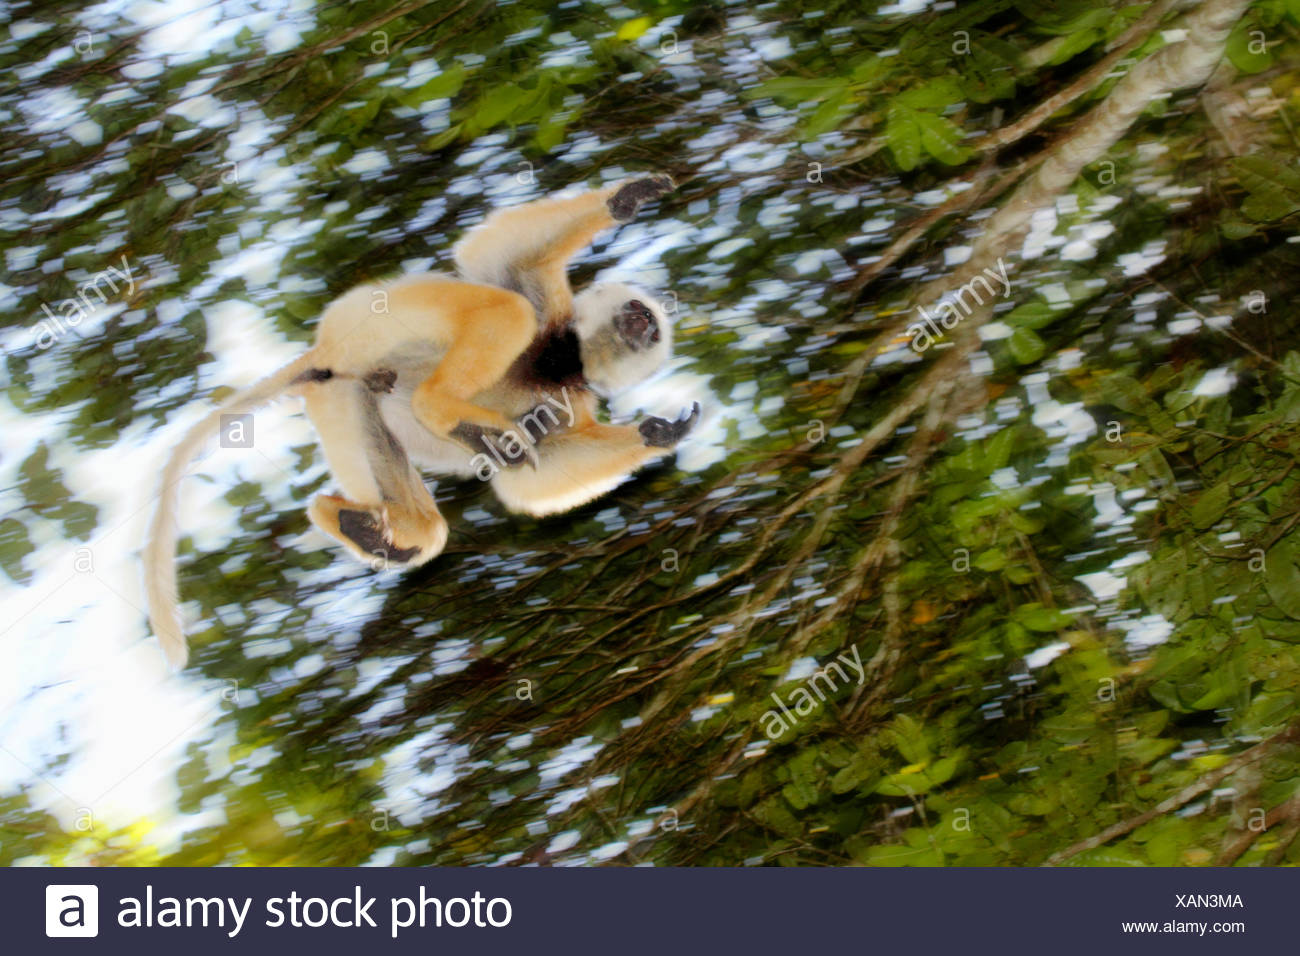 diadem sifaka, diademed sifaka (Propithecus diadema), jumping from tree to tree, Madagascar, Analamazaotra National Park - Stock Image